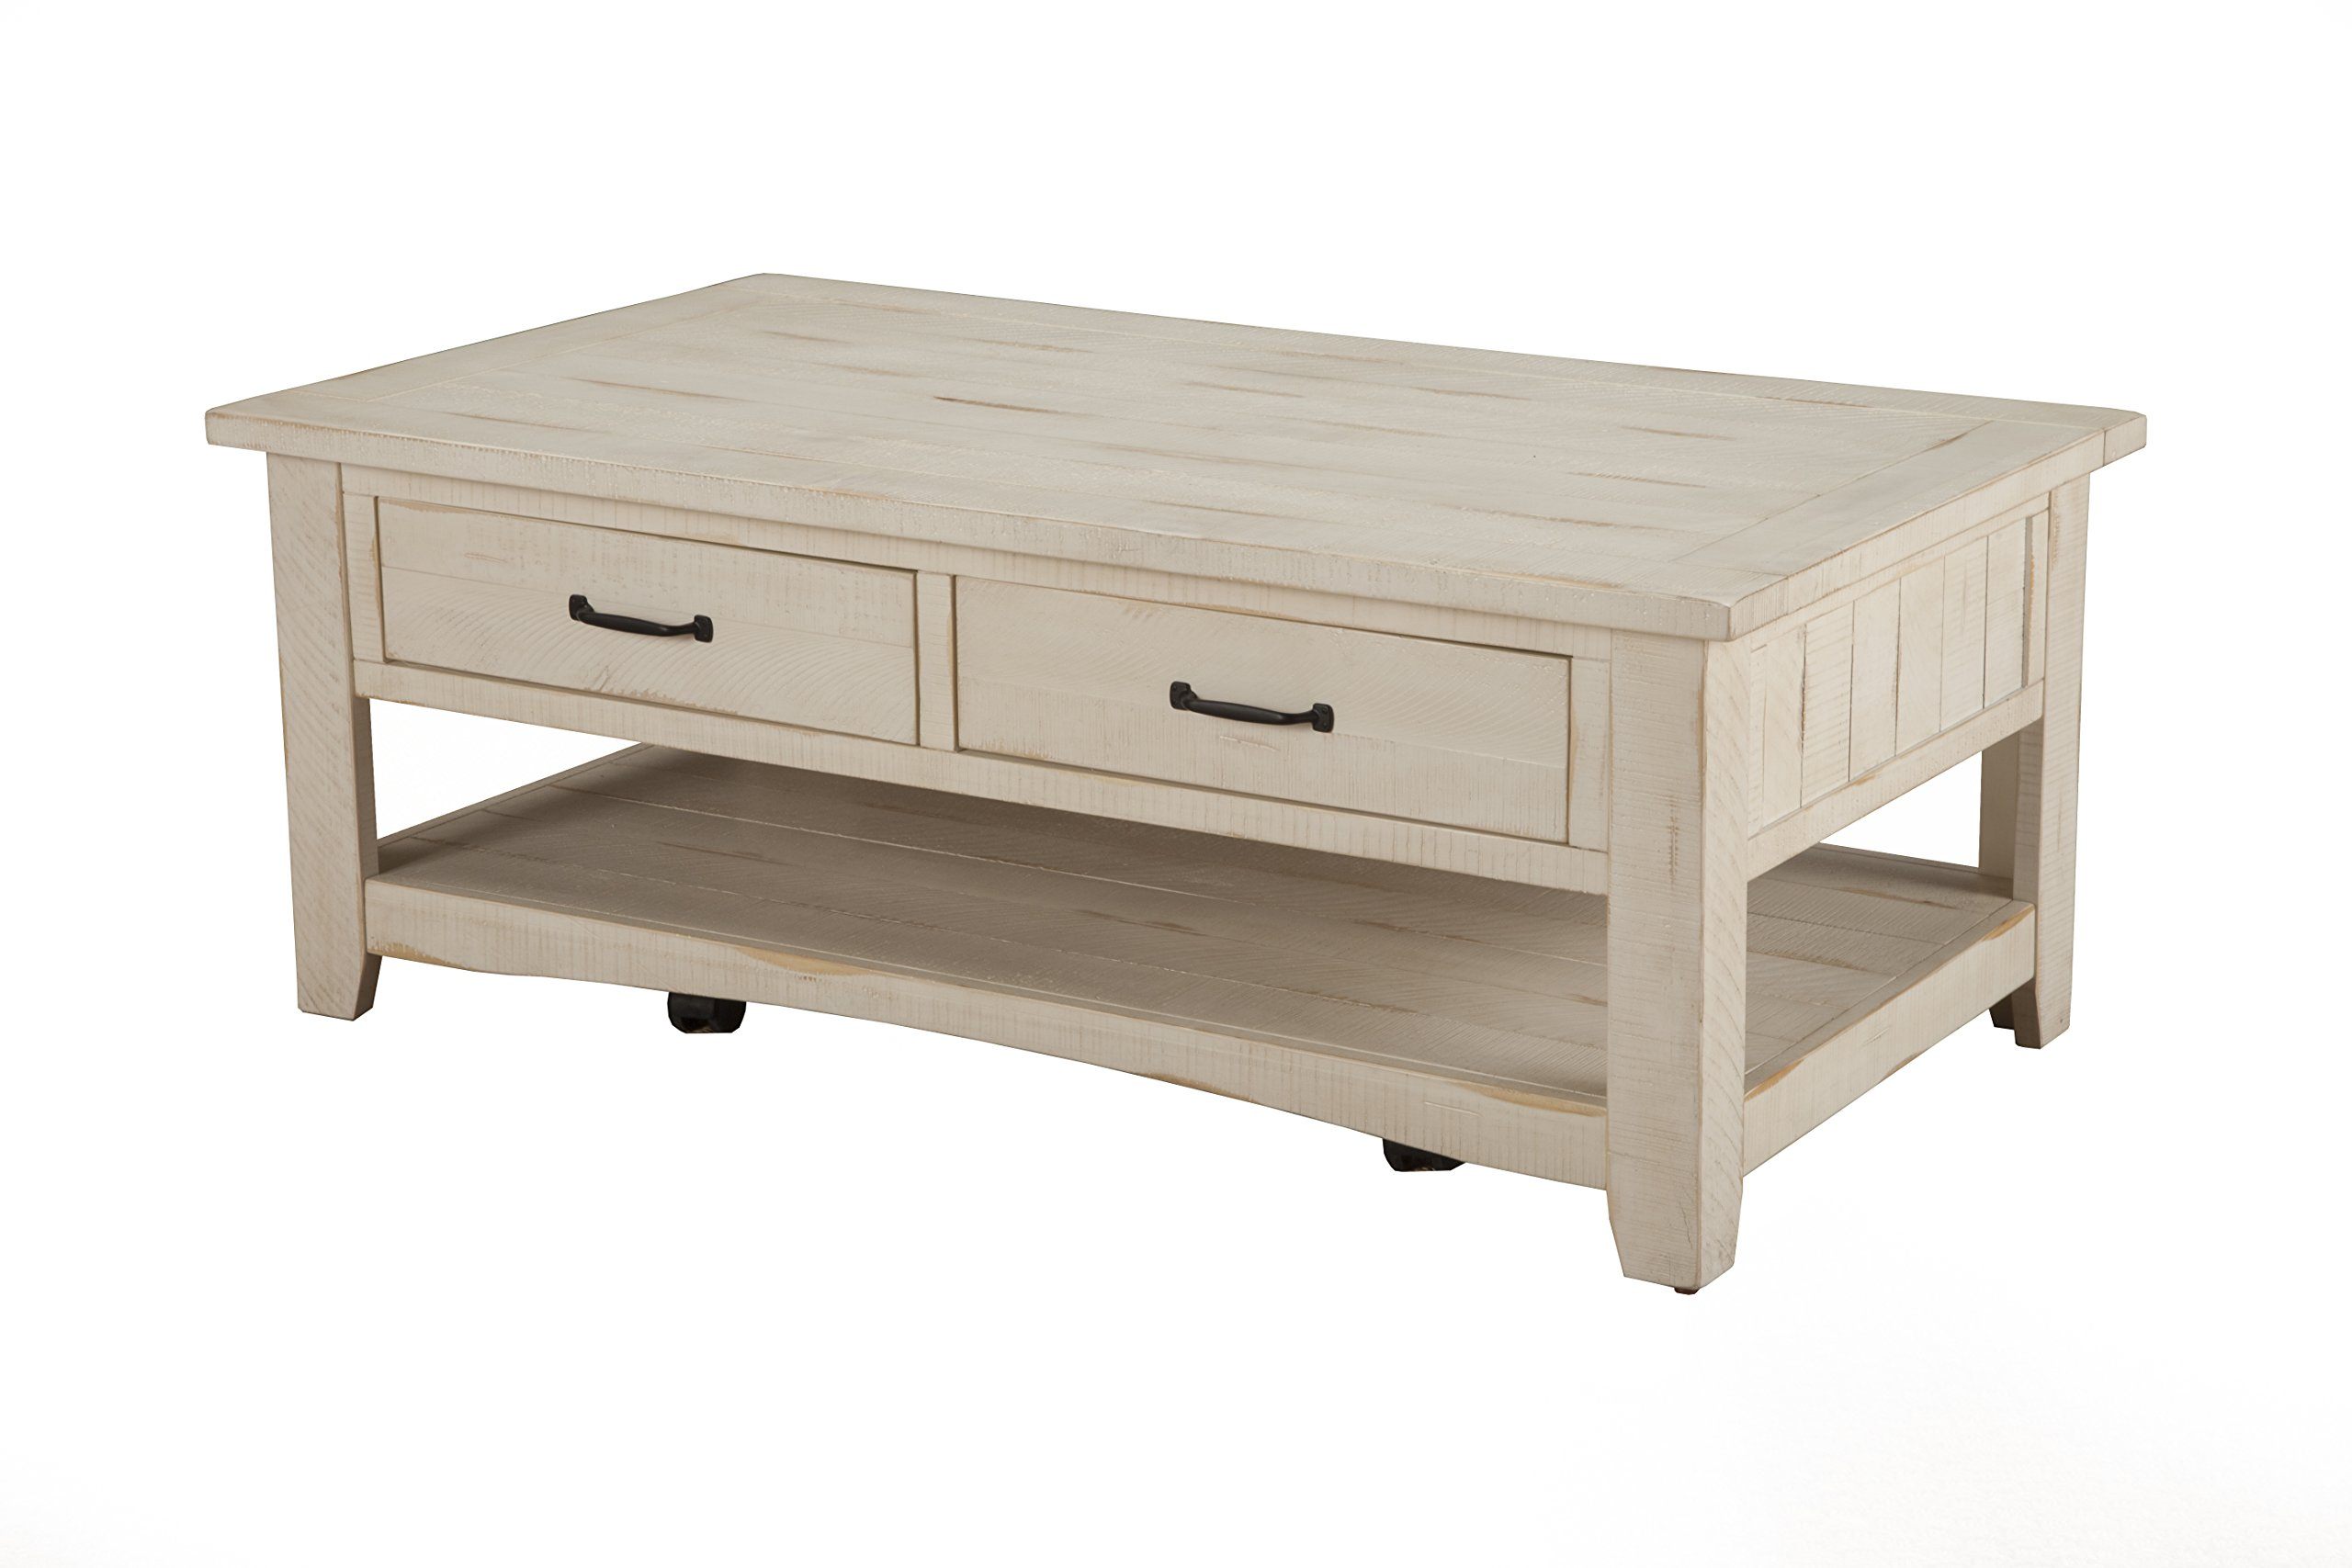 - Martin Svensson Home Rustic Coffee Table, Antique White - Buy